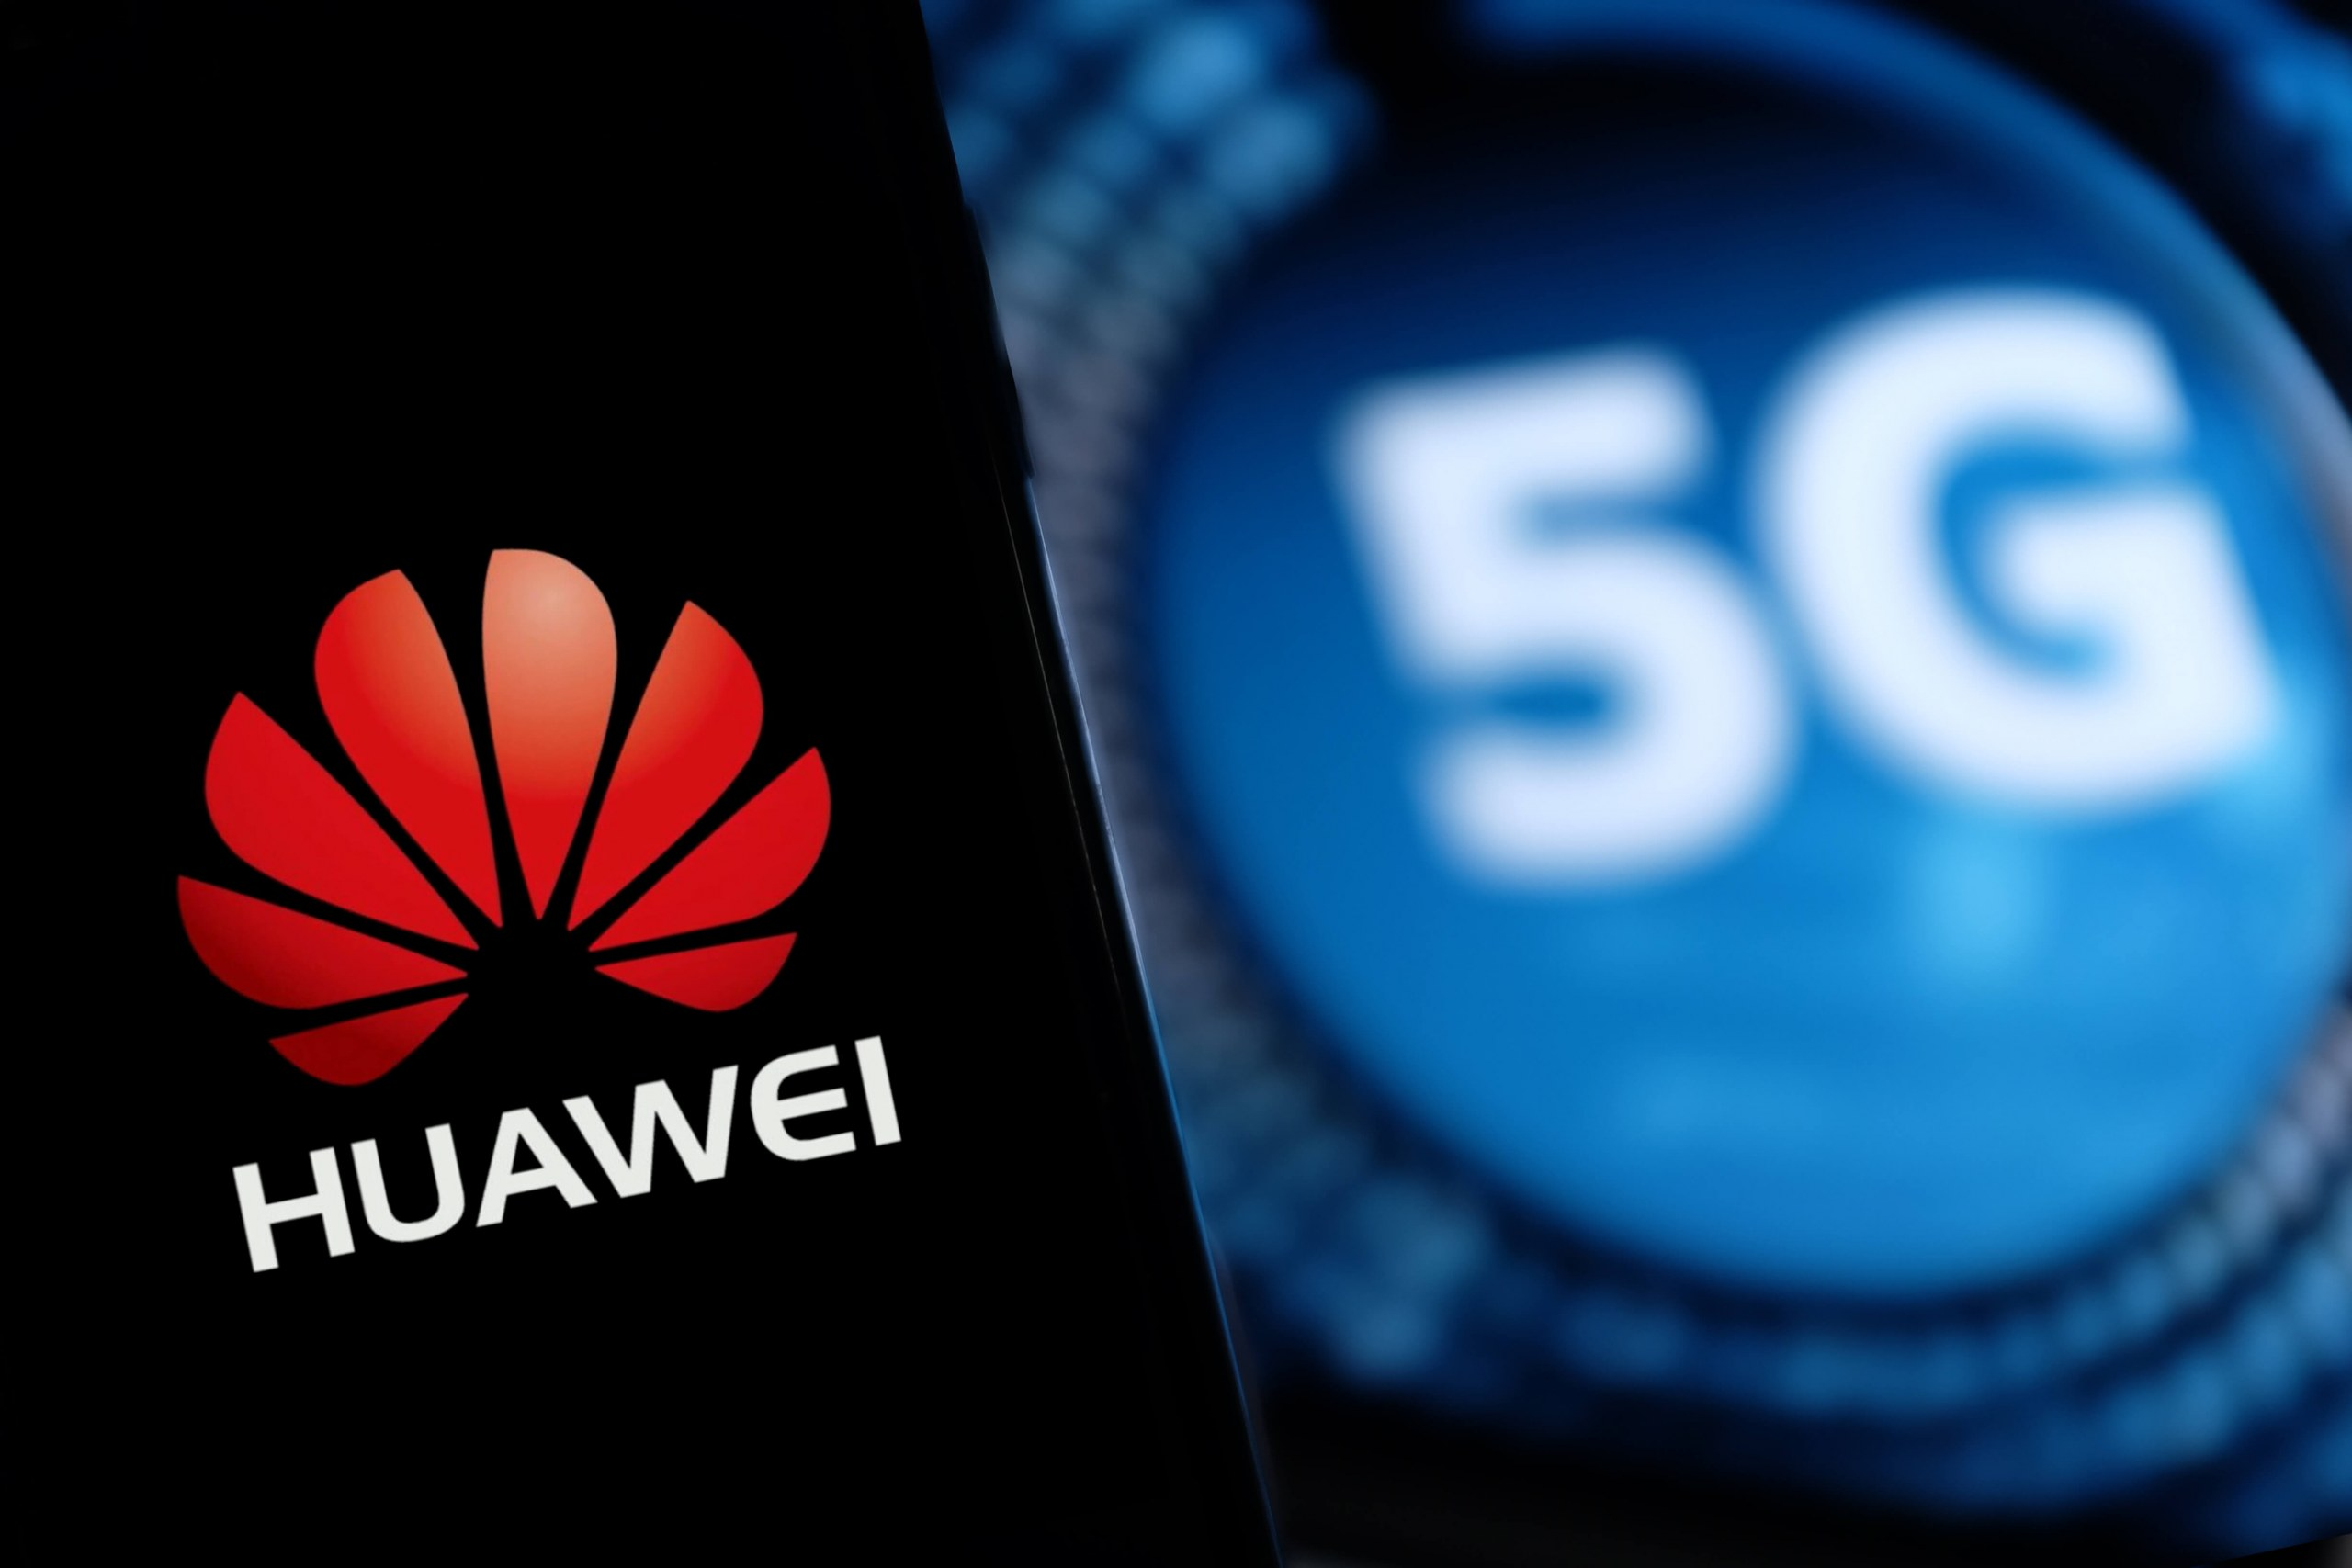 UK to ban Huawei equipment in 2021 and remove it from 5G networks by 2027